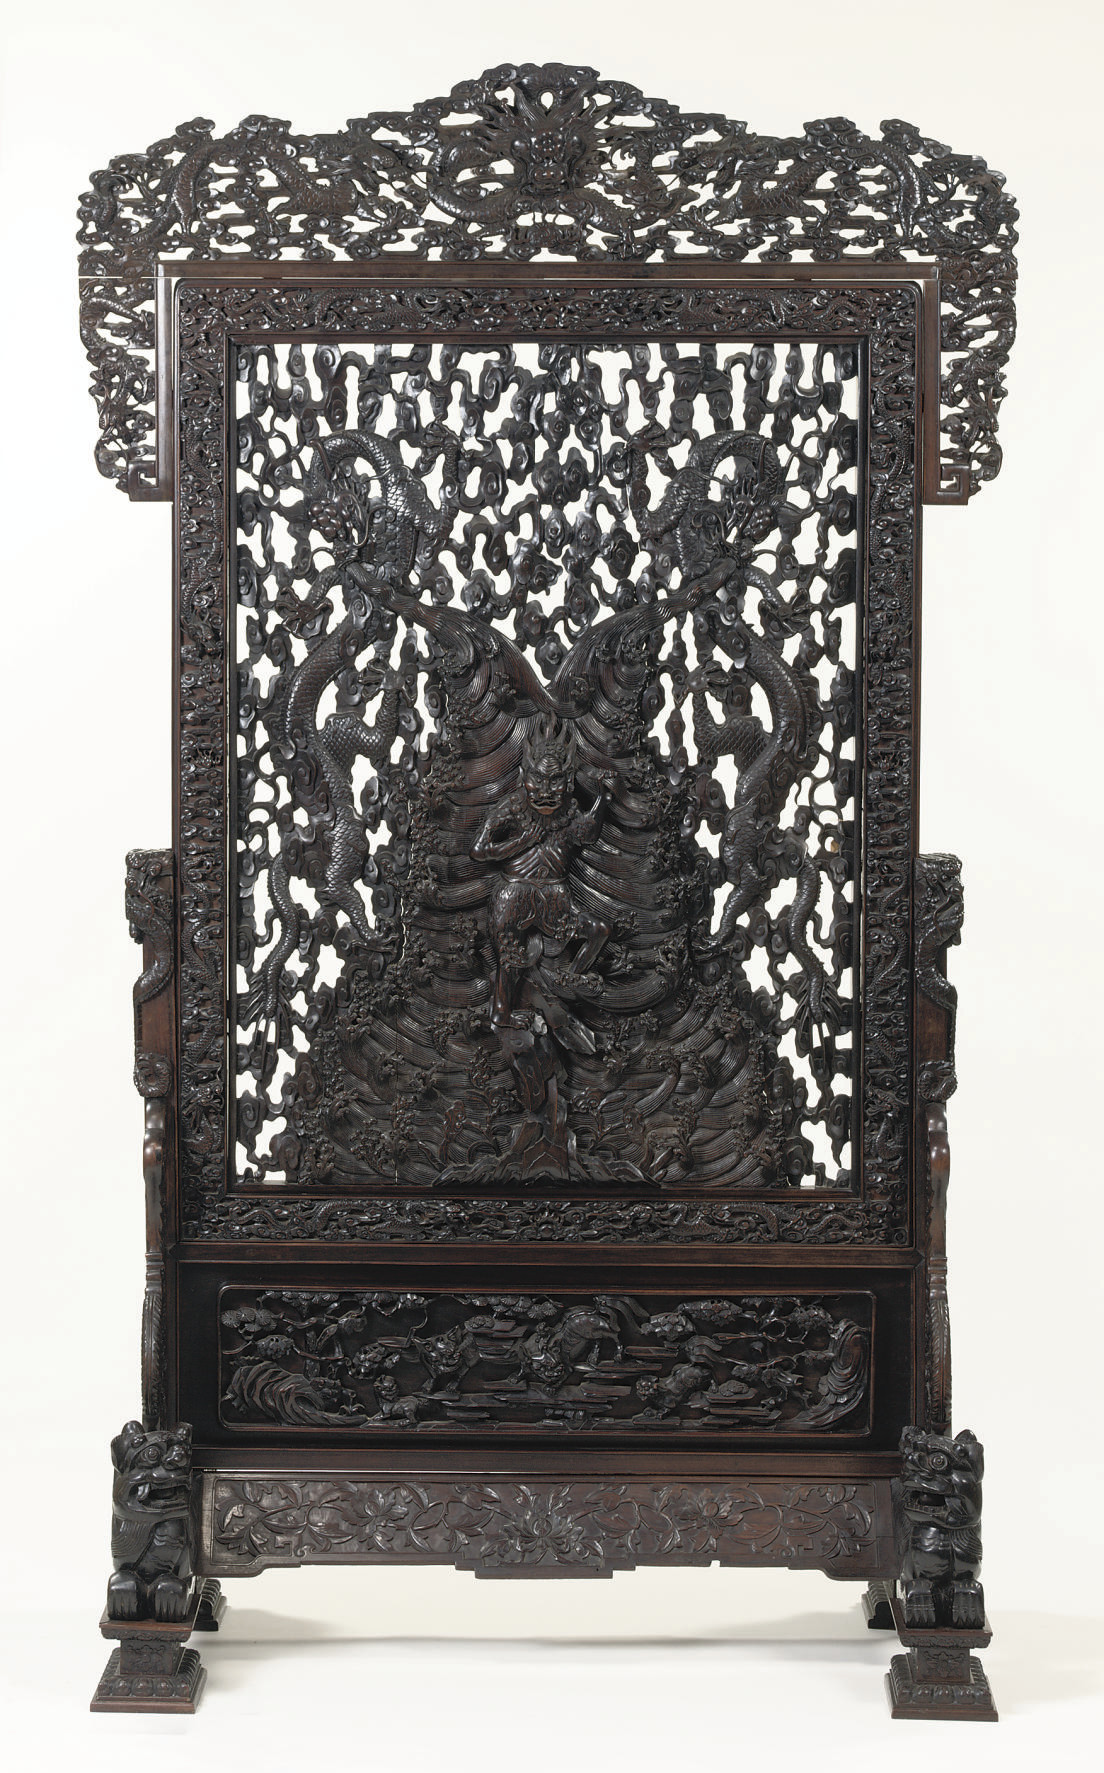 A very large hardwood openwork